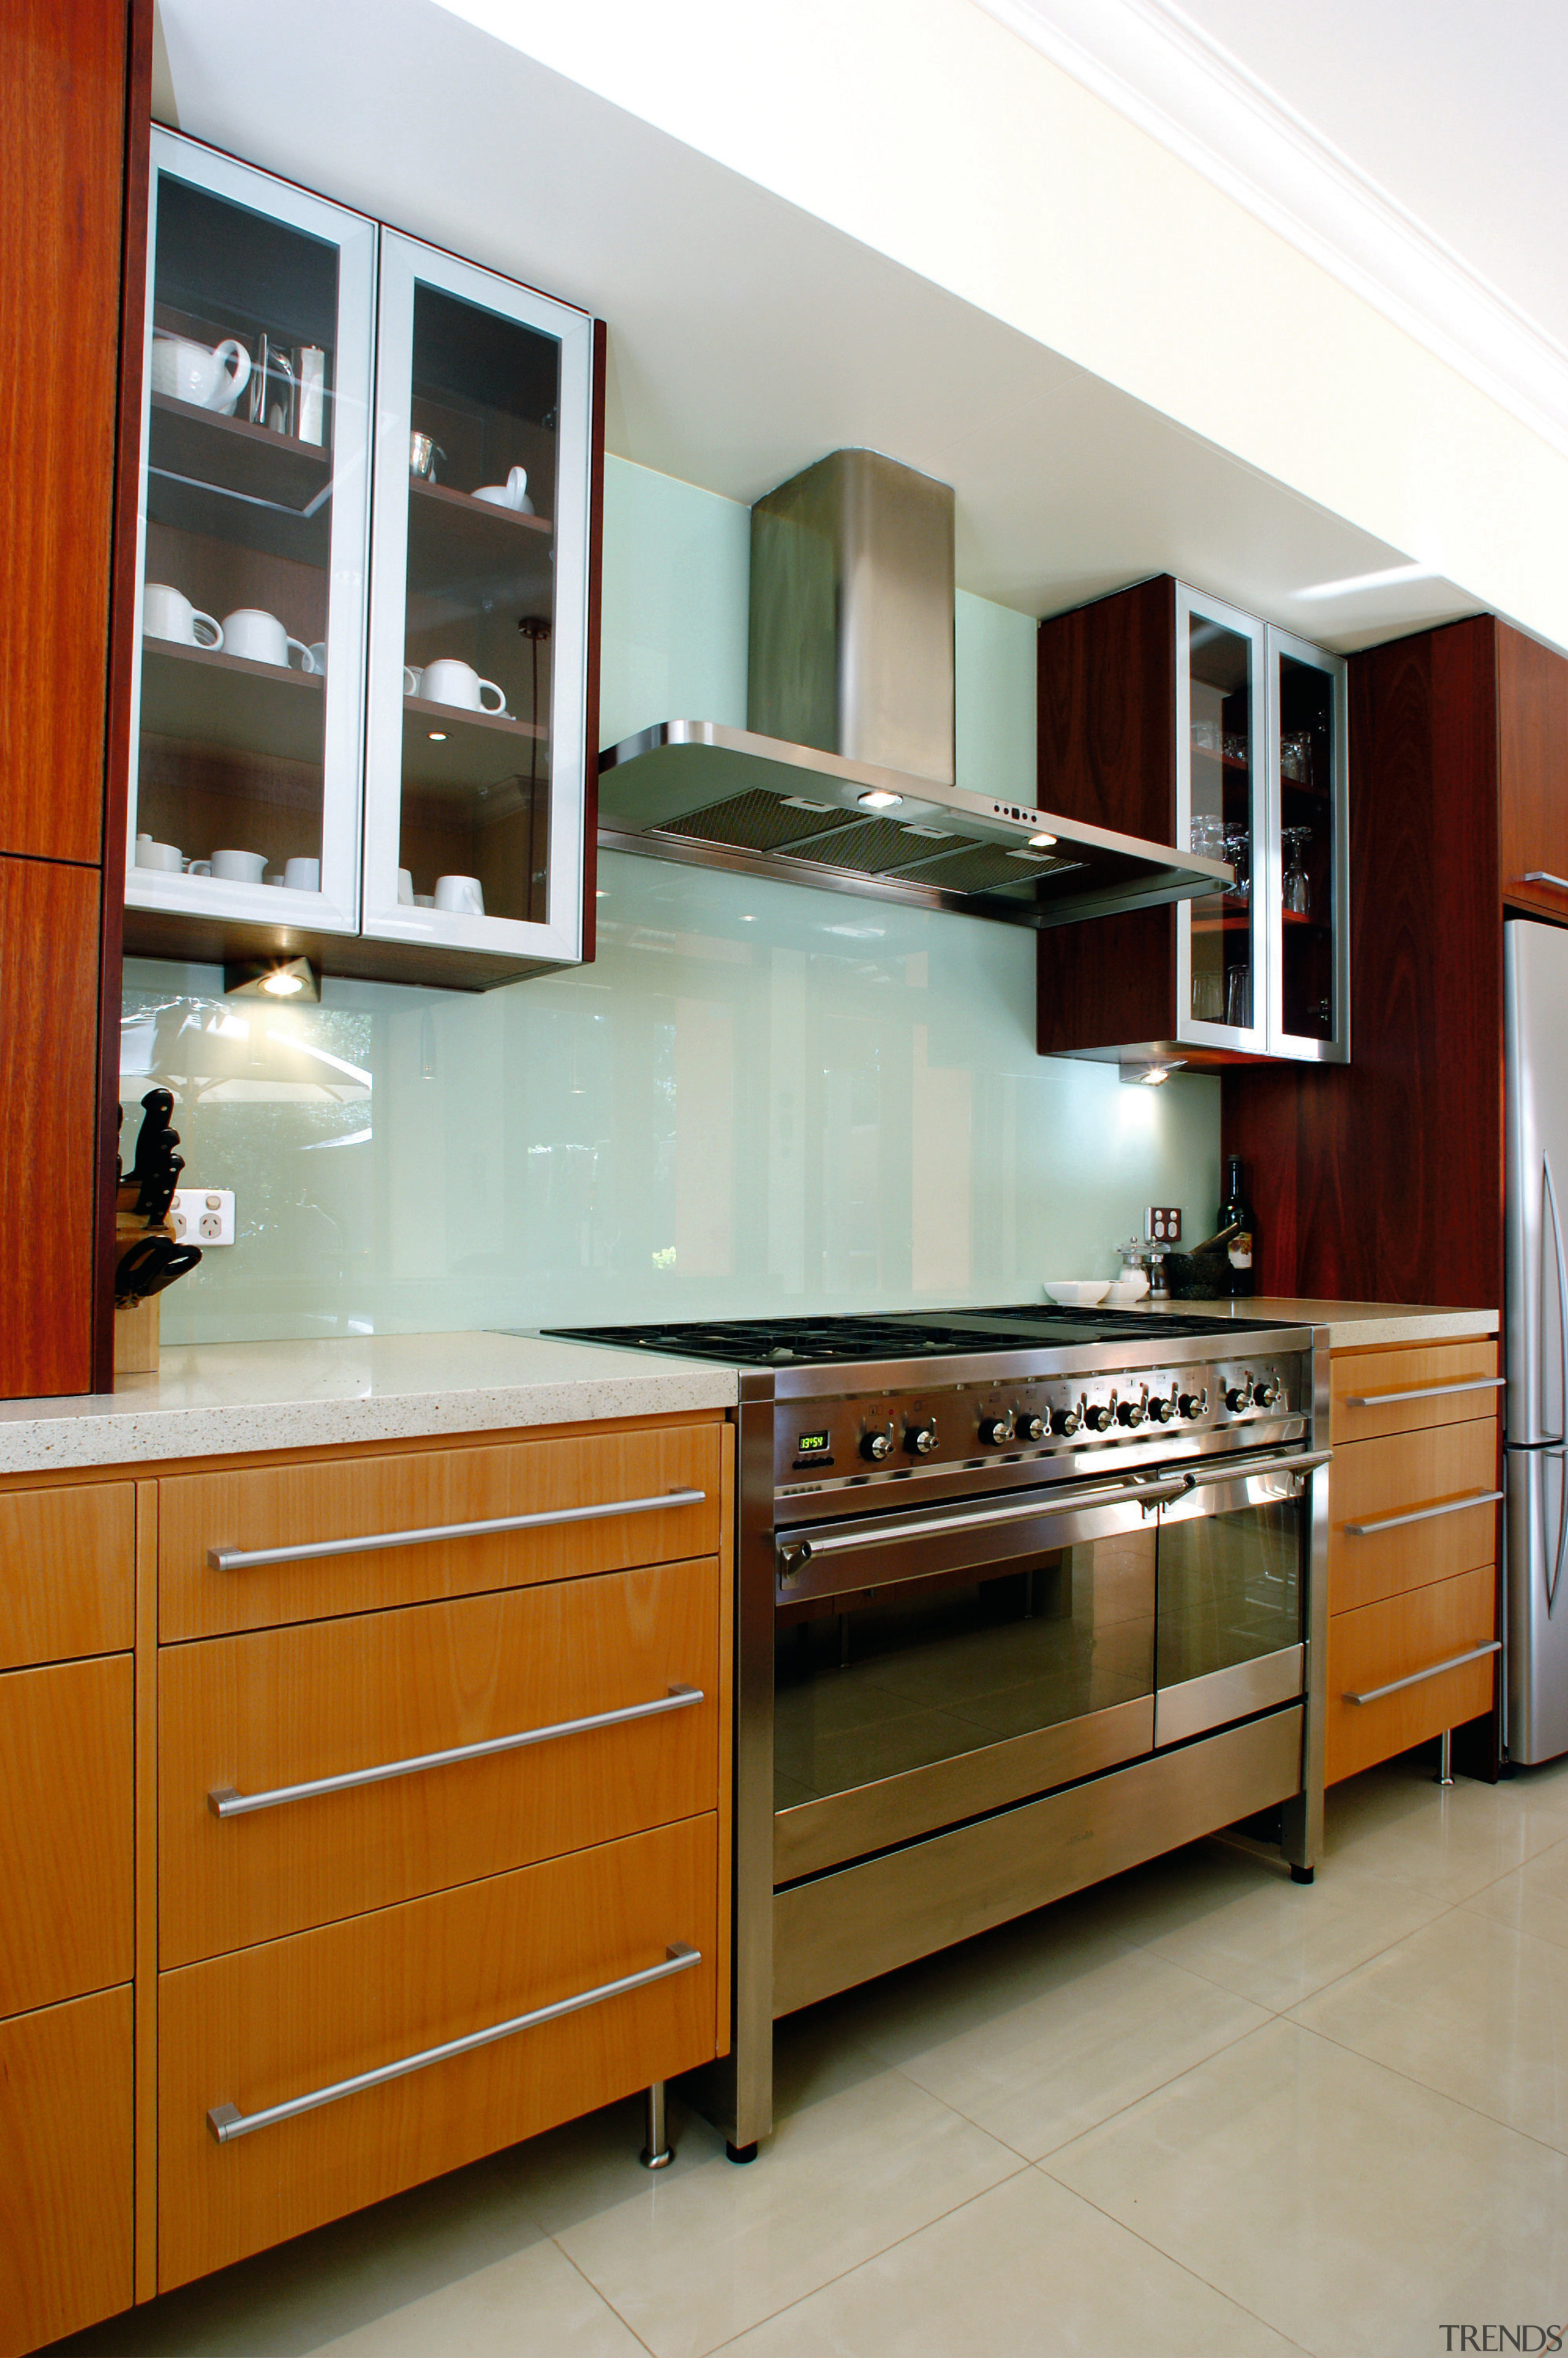 A view of a kitchen with Omega Smeg cabinetry, countertop, cuisine classique, furniture, interior design, kitchen, room, gray, brown